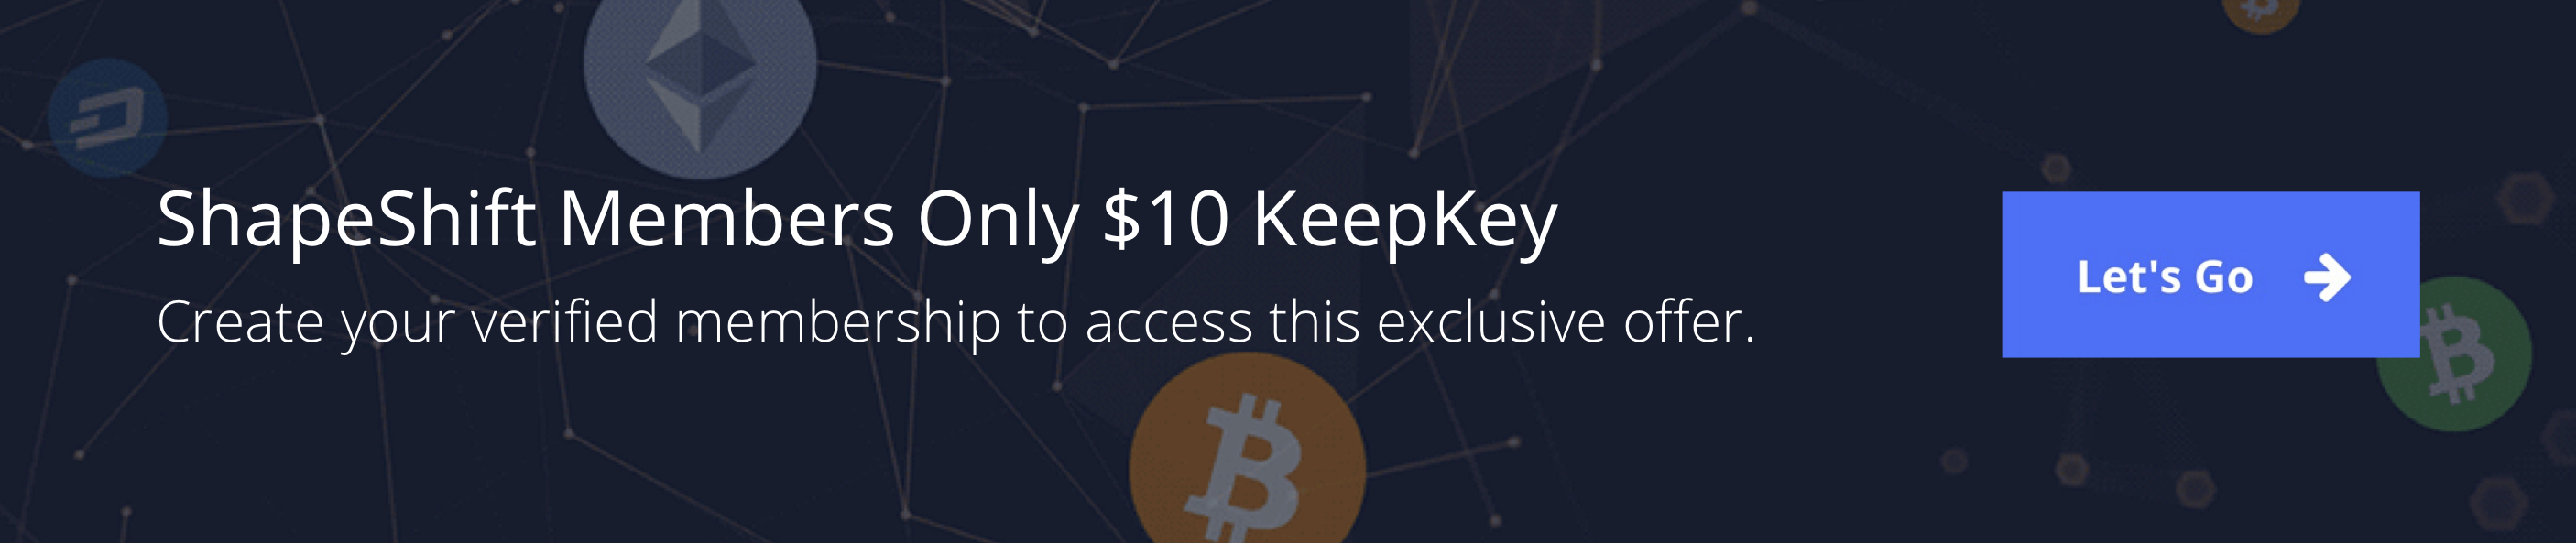 ShapeShift Members Only: Sign up to receive a KeepKey hardware wallet for only $10.